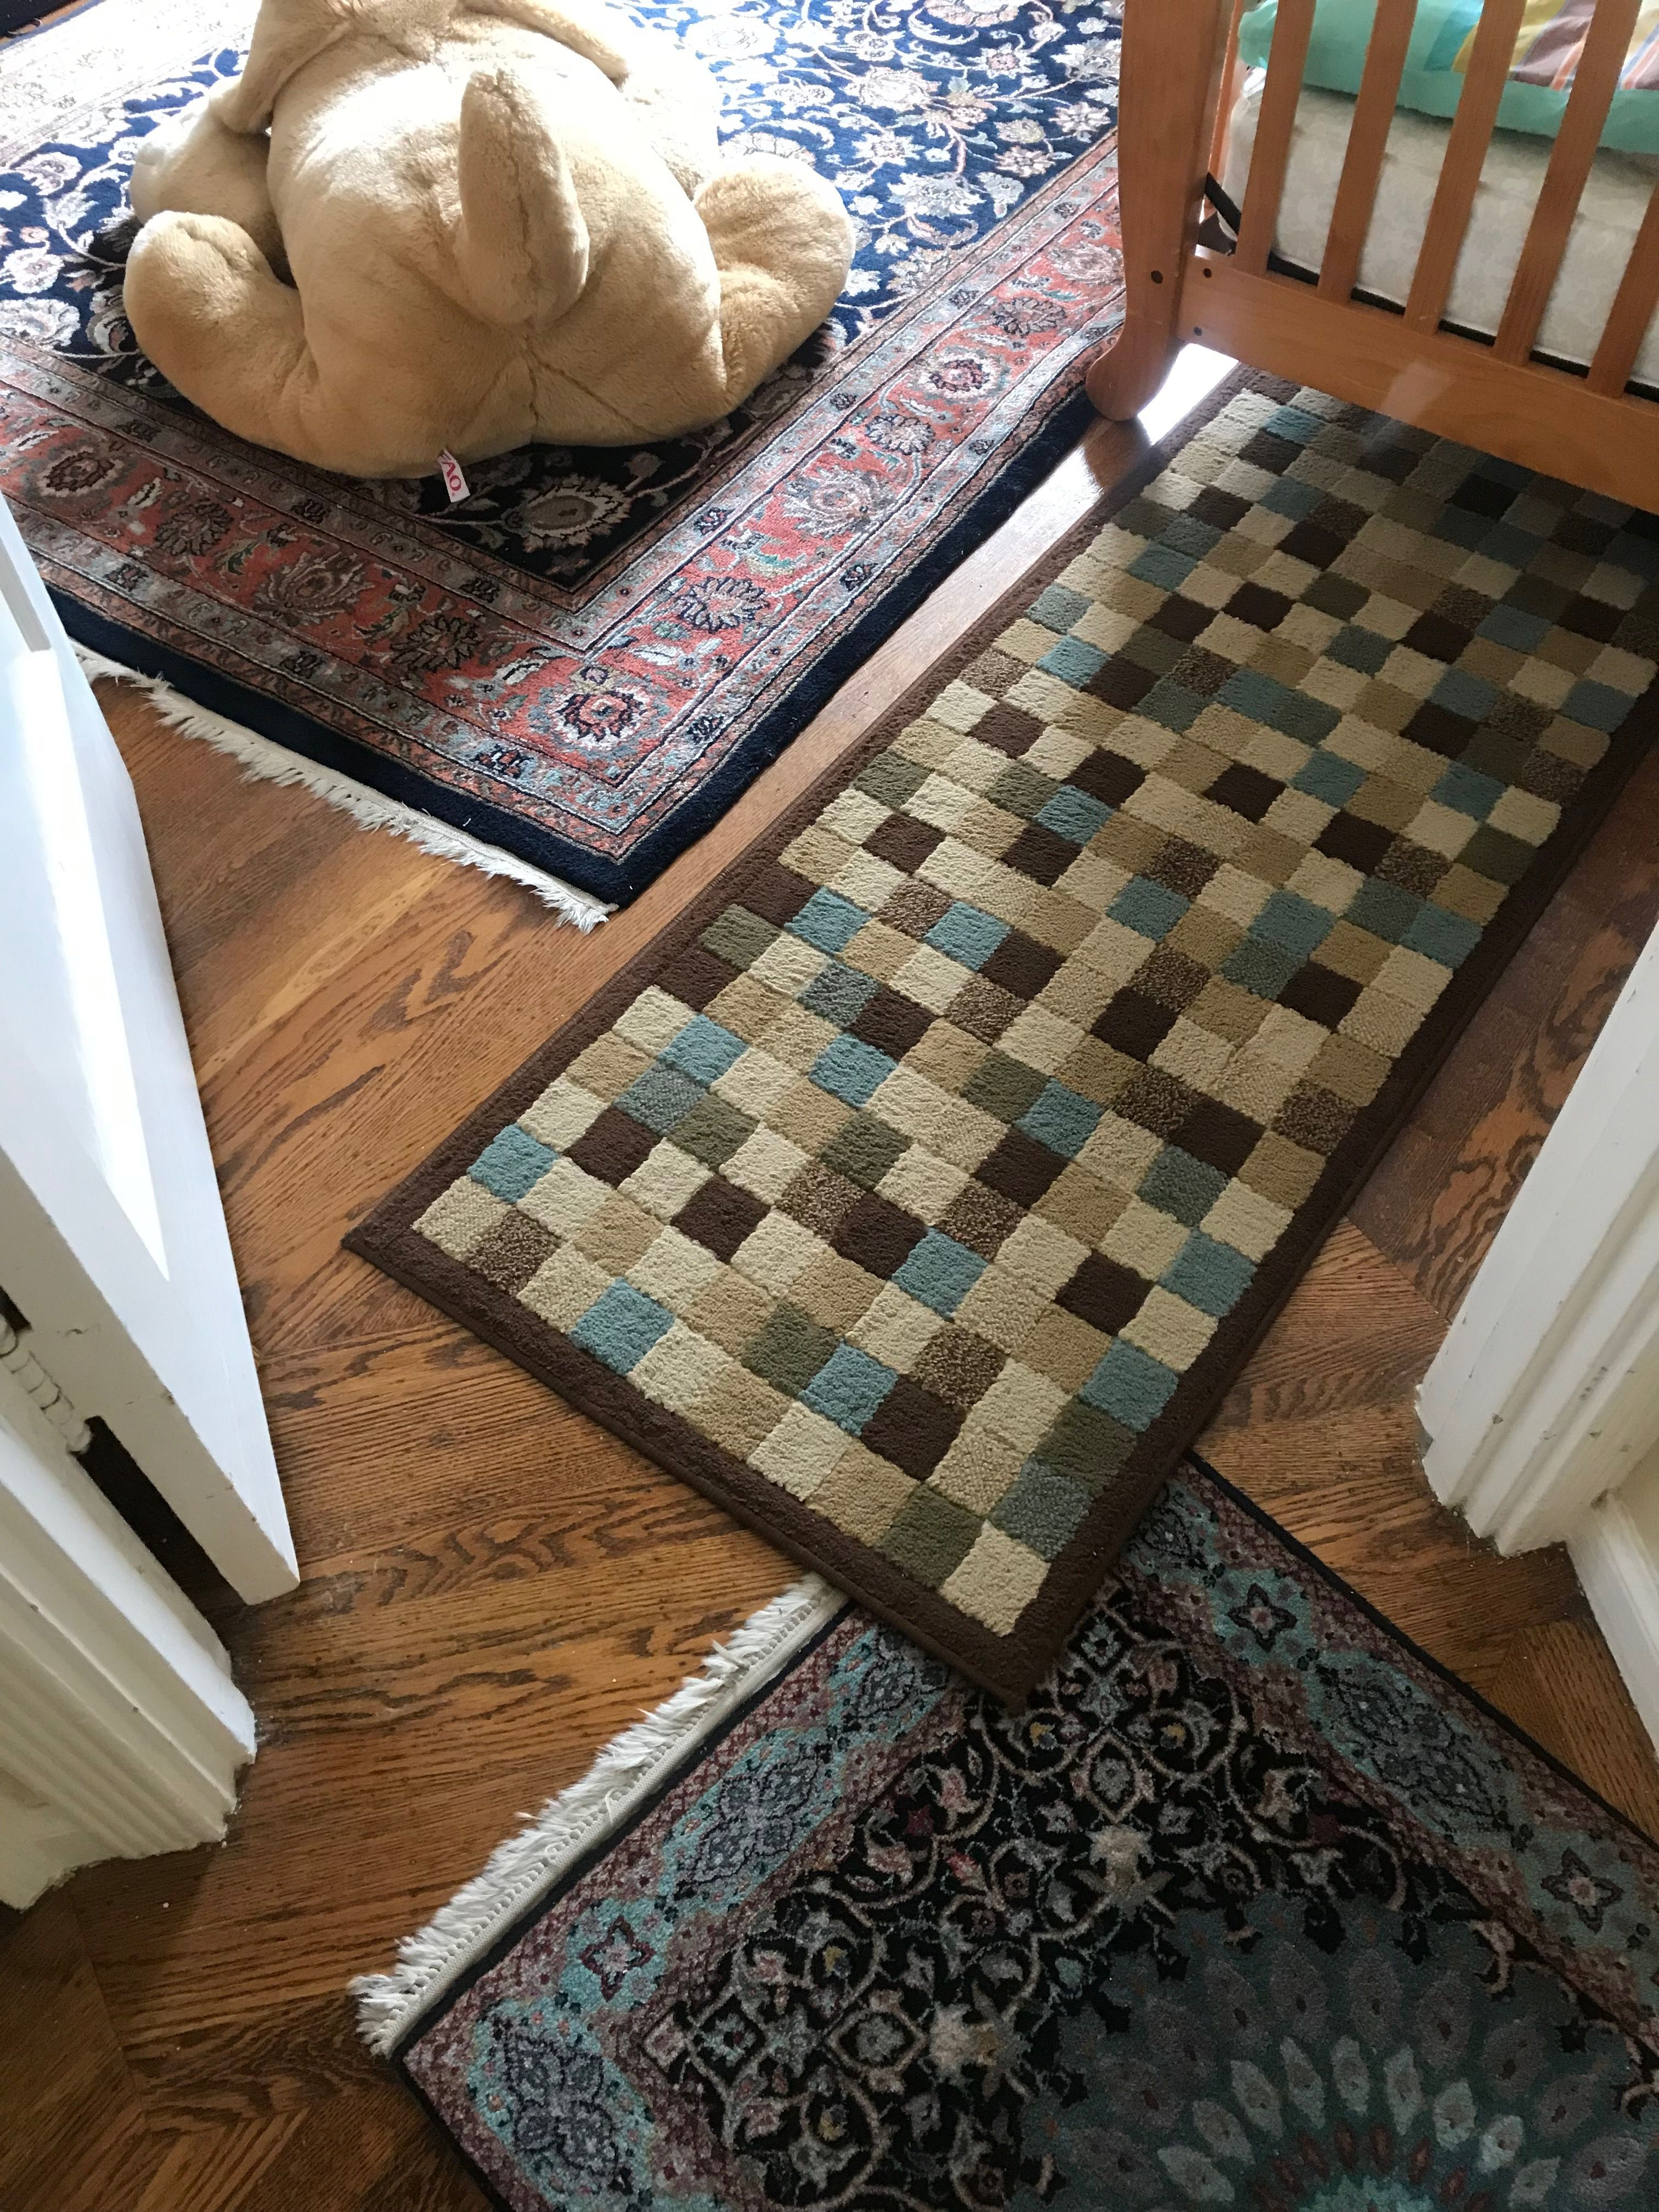 Oriental Rug And Area Rug Combined To Create Decor And Warmth In